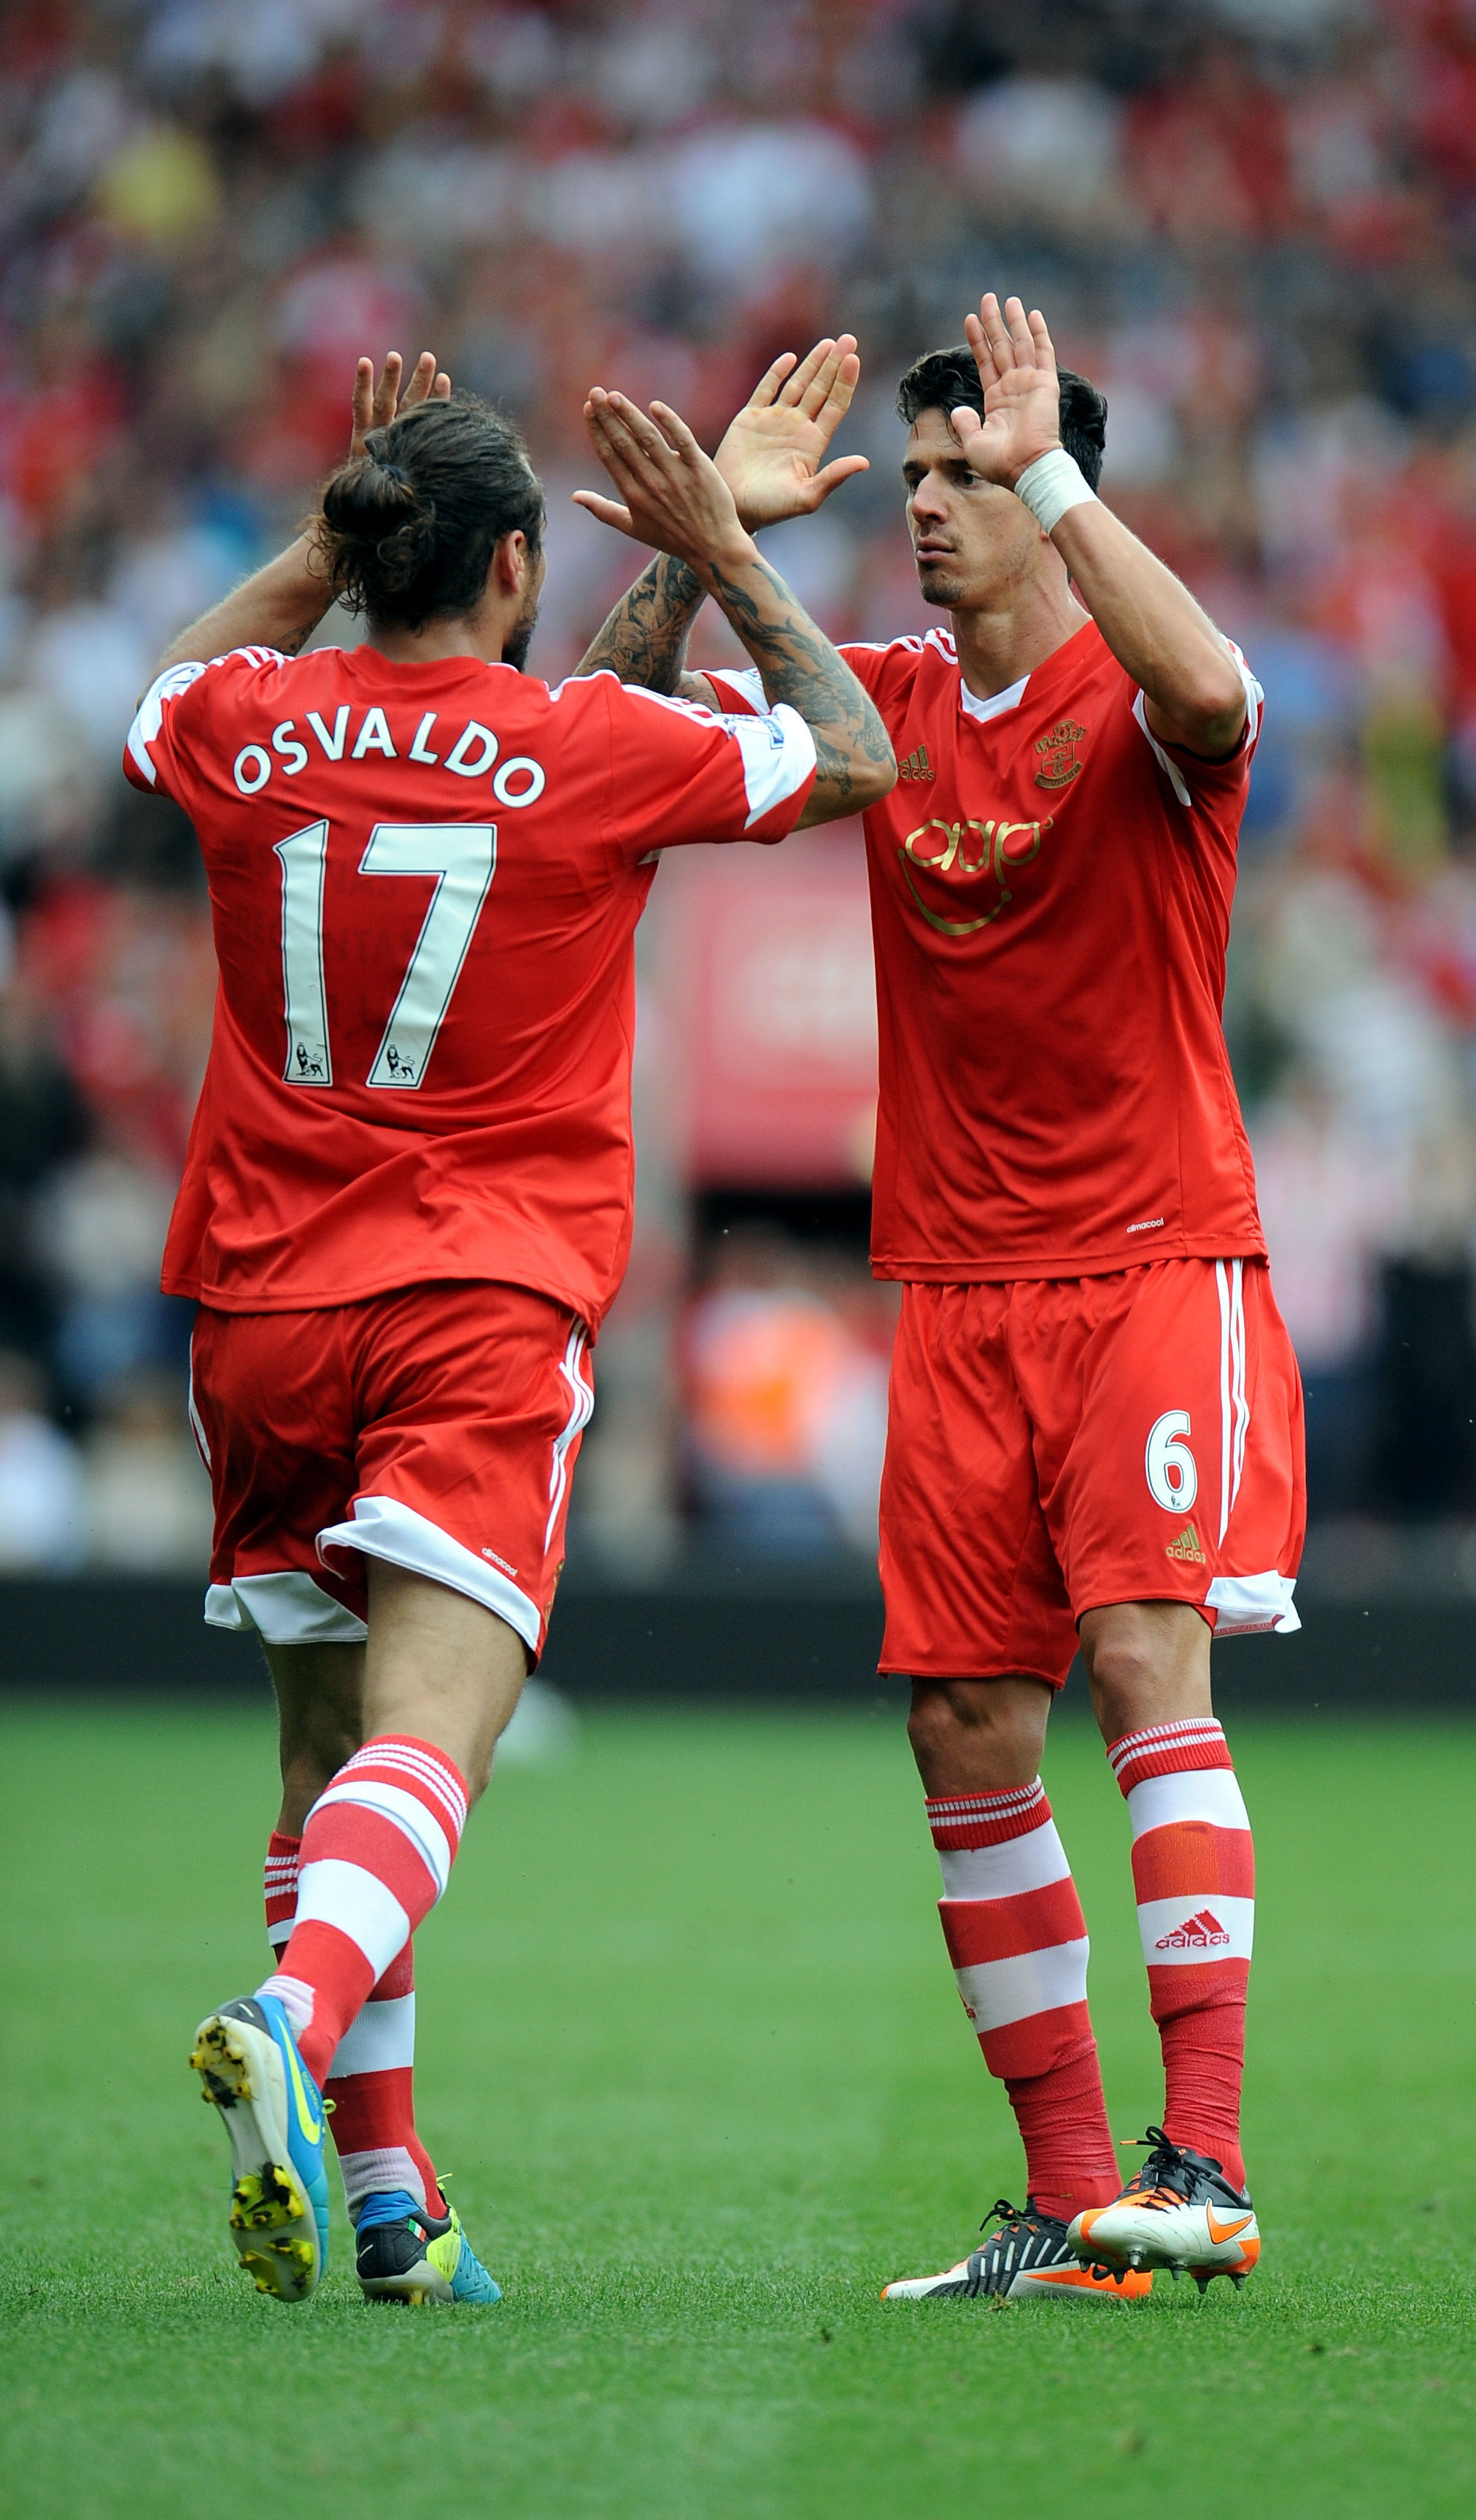 Dani Osvaldo and Jose Fonte in the current Adidas made kit.